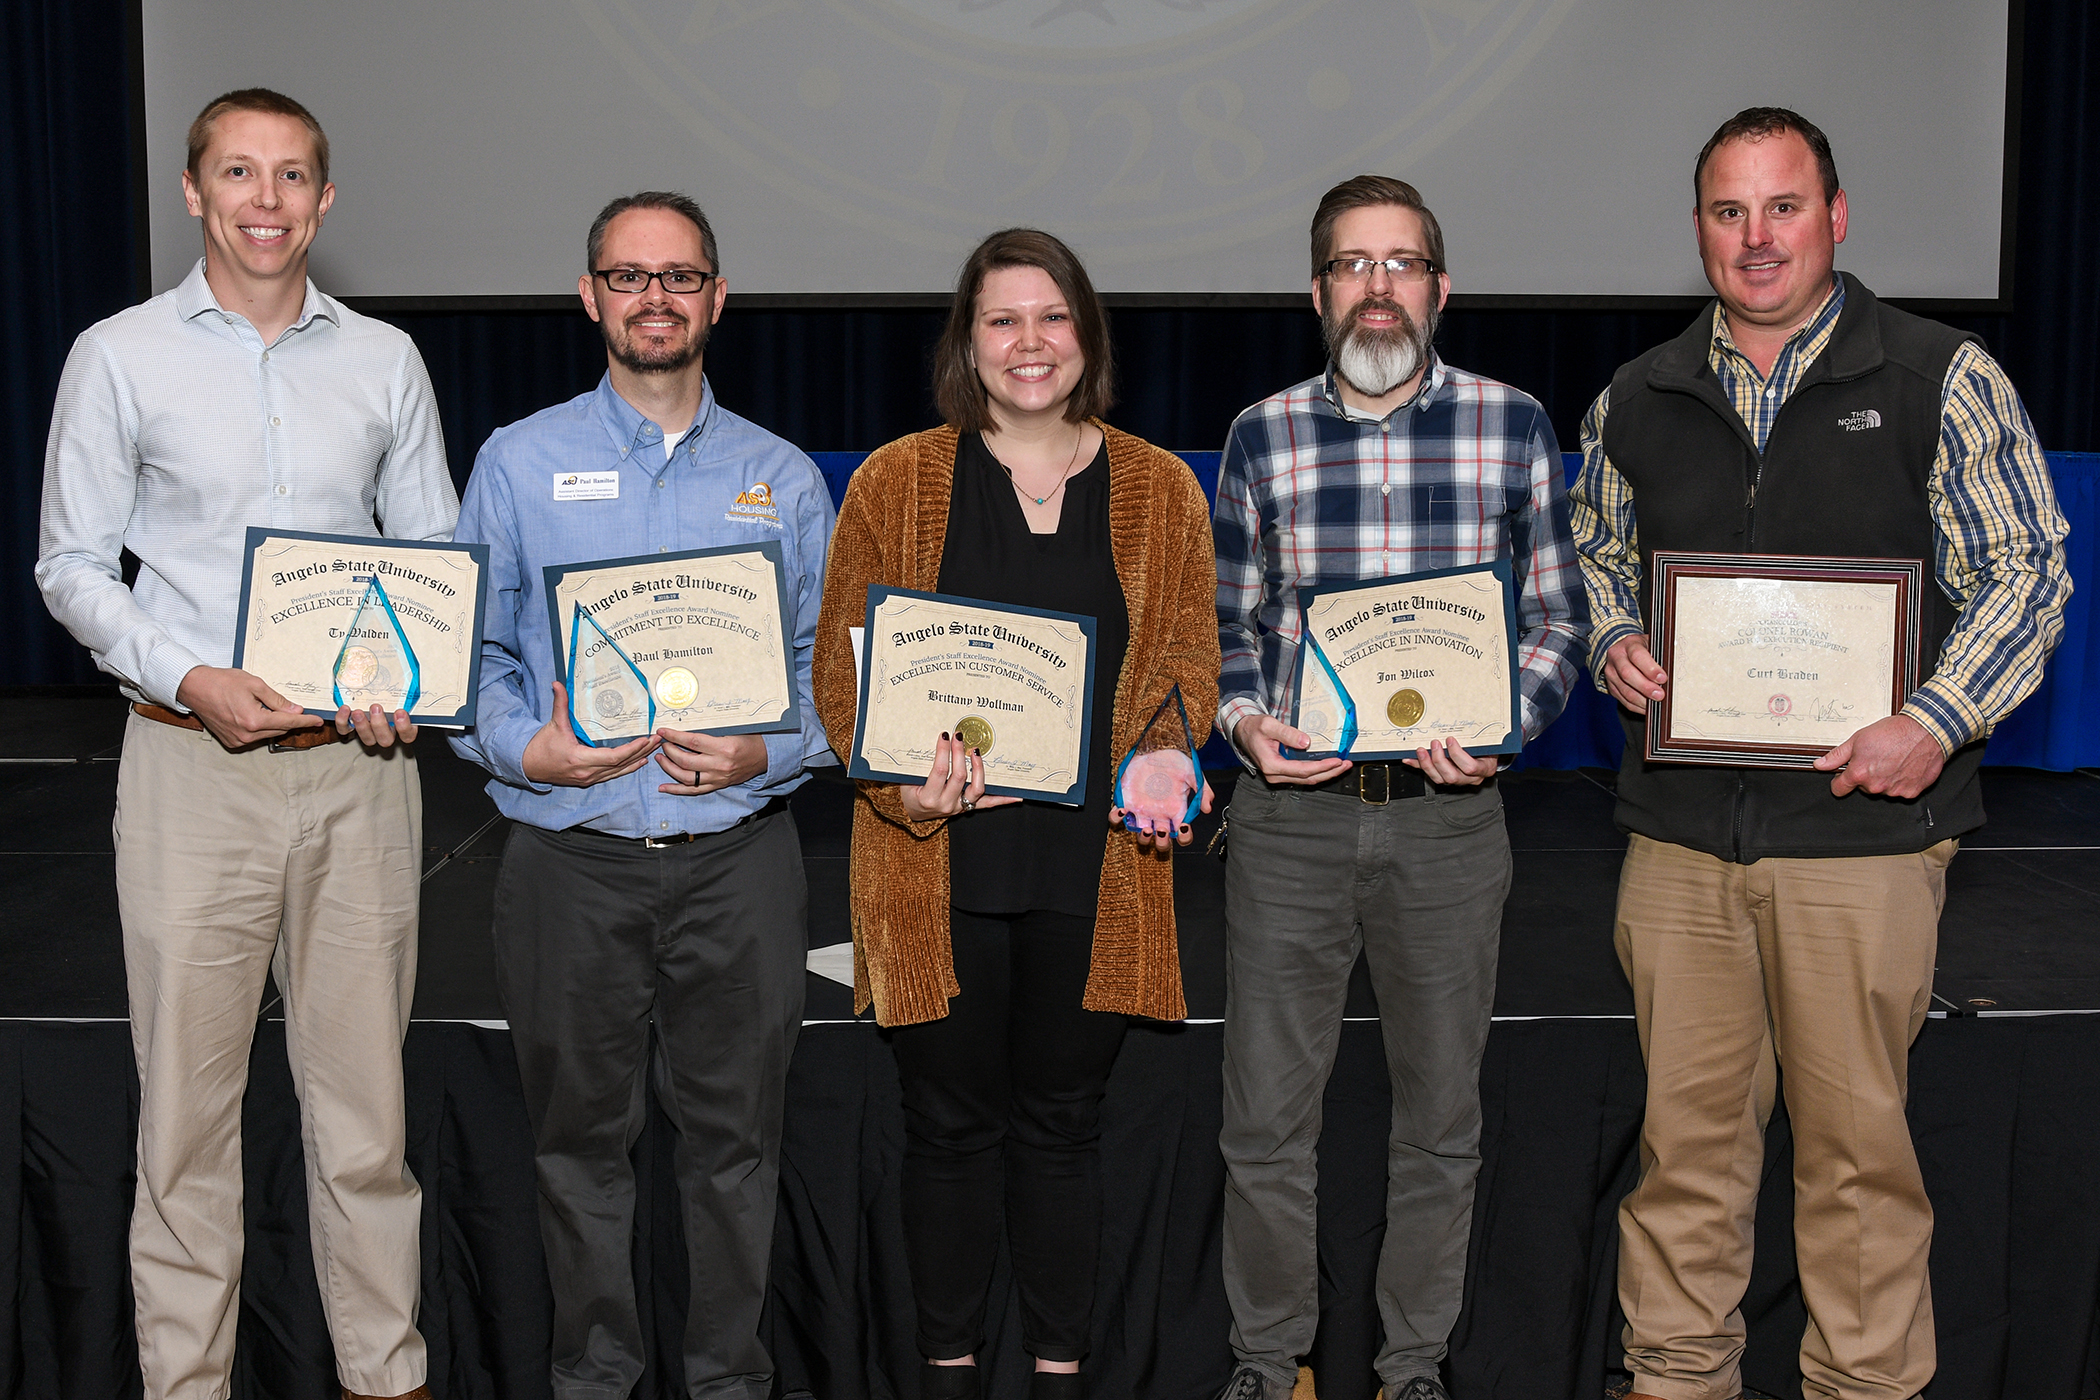 ASU_Staff_Award_Winners_2019_1555516108461.jpg